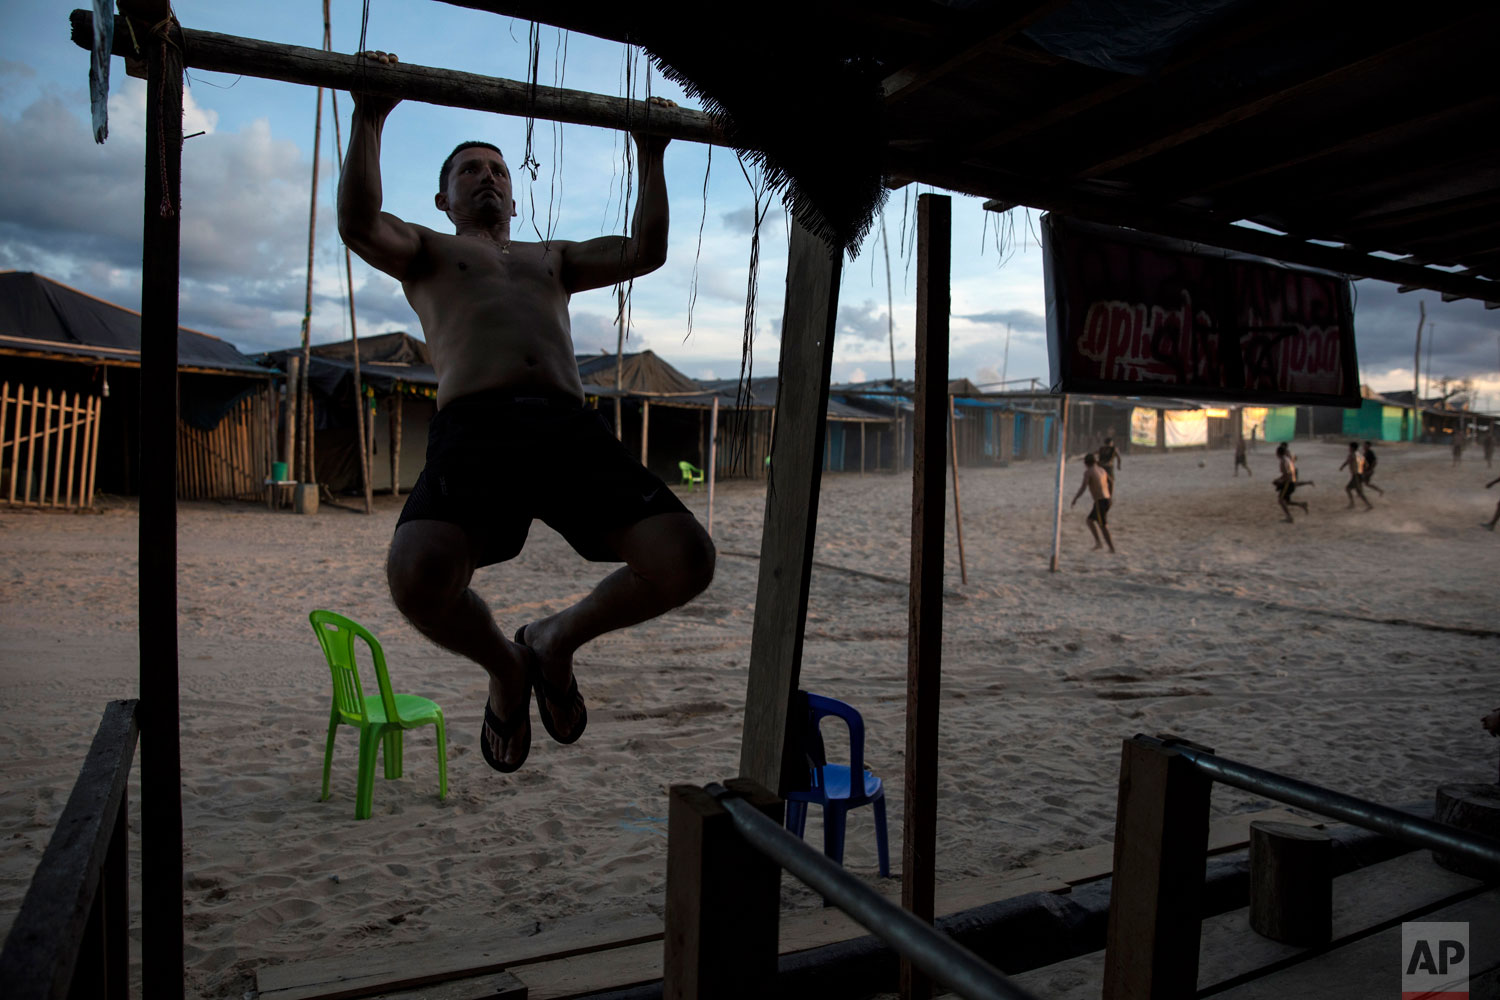 "In this March 31, 2019 photo published May 15, Maj. Gustavo Cerdeña does pull-ups using the wood frame of a structure at the Balata police and military base, once an illegal gold mining camp, in Peru's Tambopata province. Cerdeña said he had come to the booming area before the start of ""Operation Mercury"", in February. ""It was full of people, it was like Gomorrah before it rained fire,"" he said, referring to the notorious city's destruction in the Bible. ""Now everything is quieter."" (AP Photo/Rodrigo Abd)"